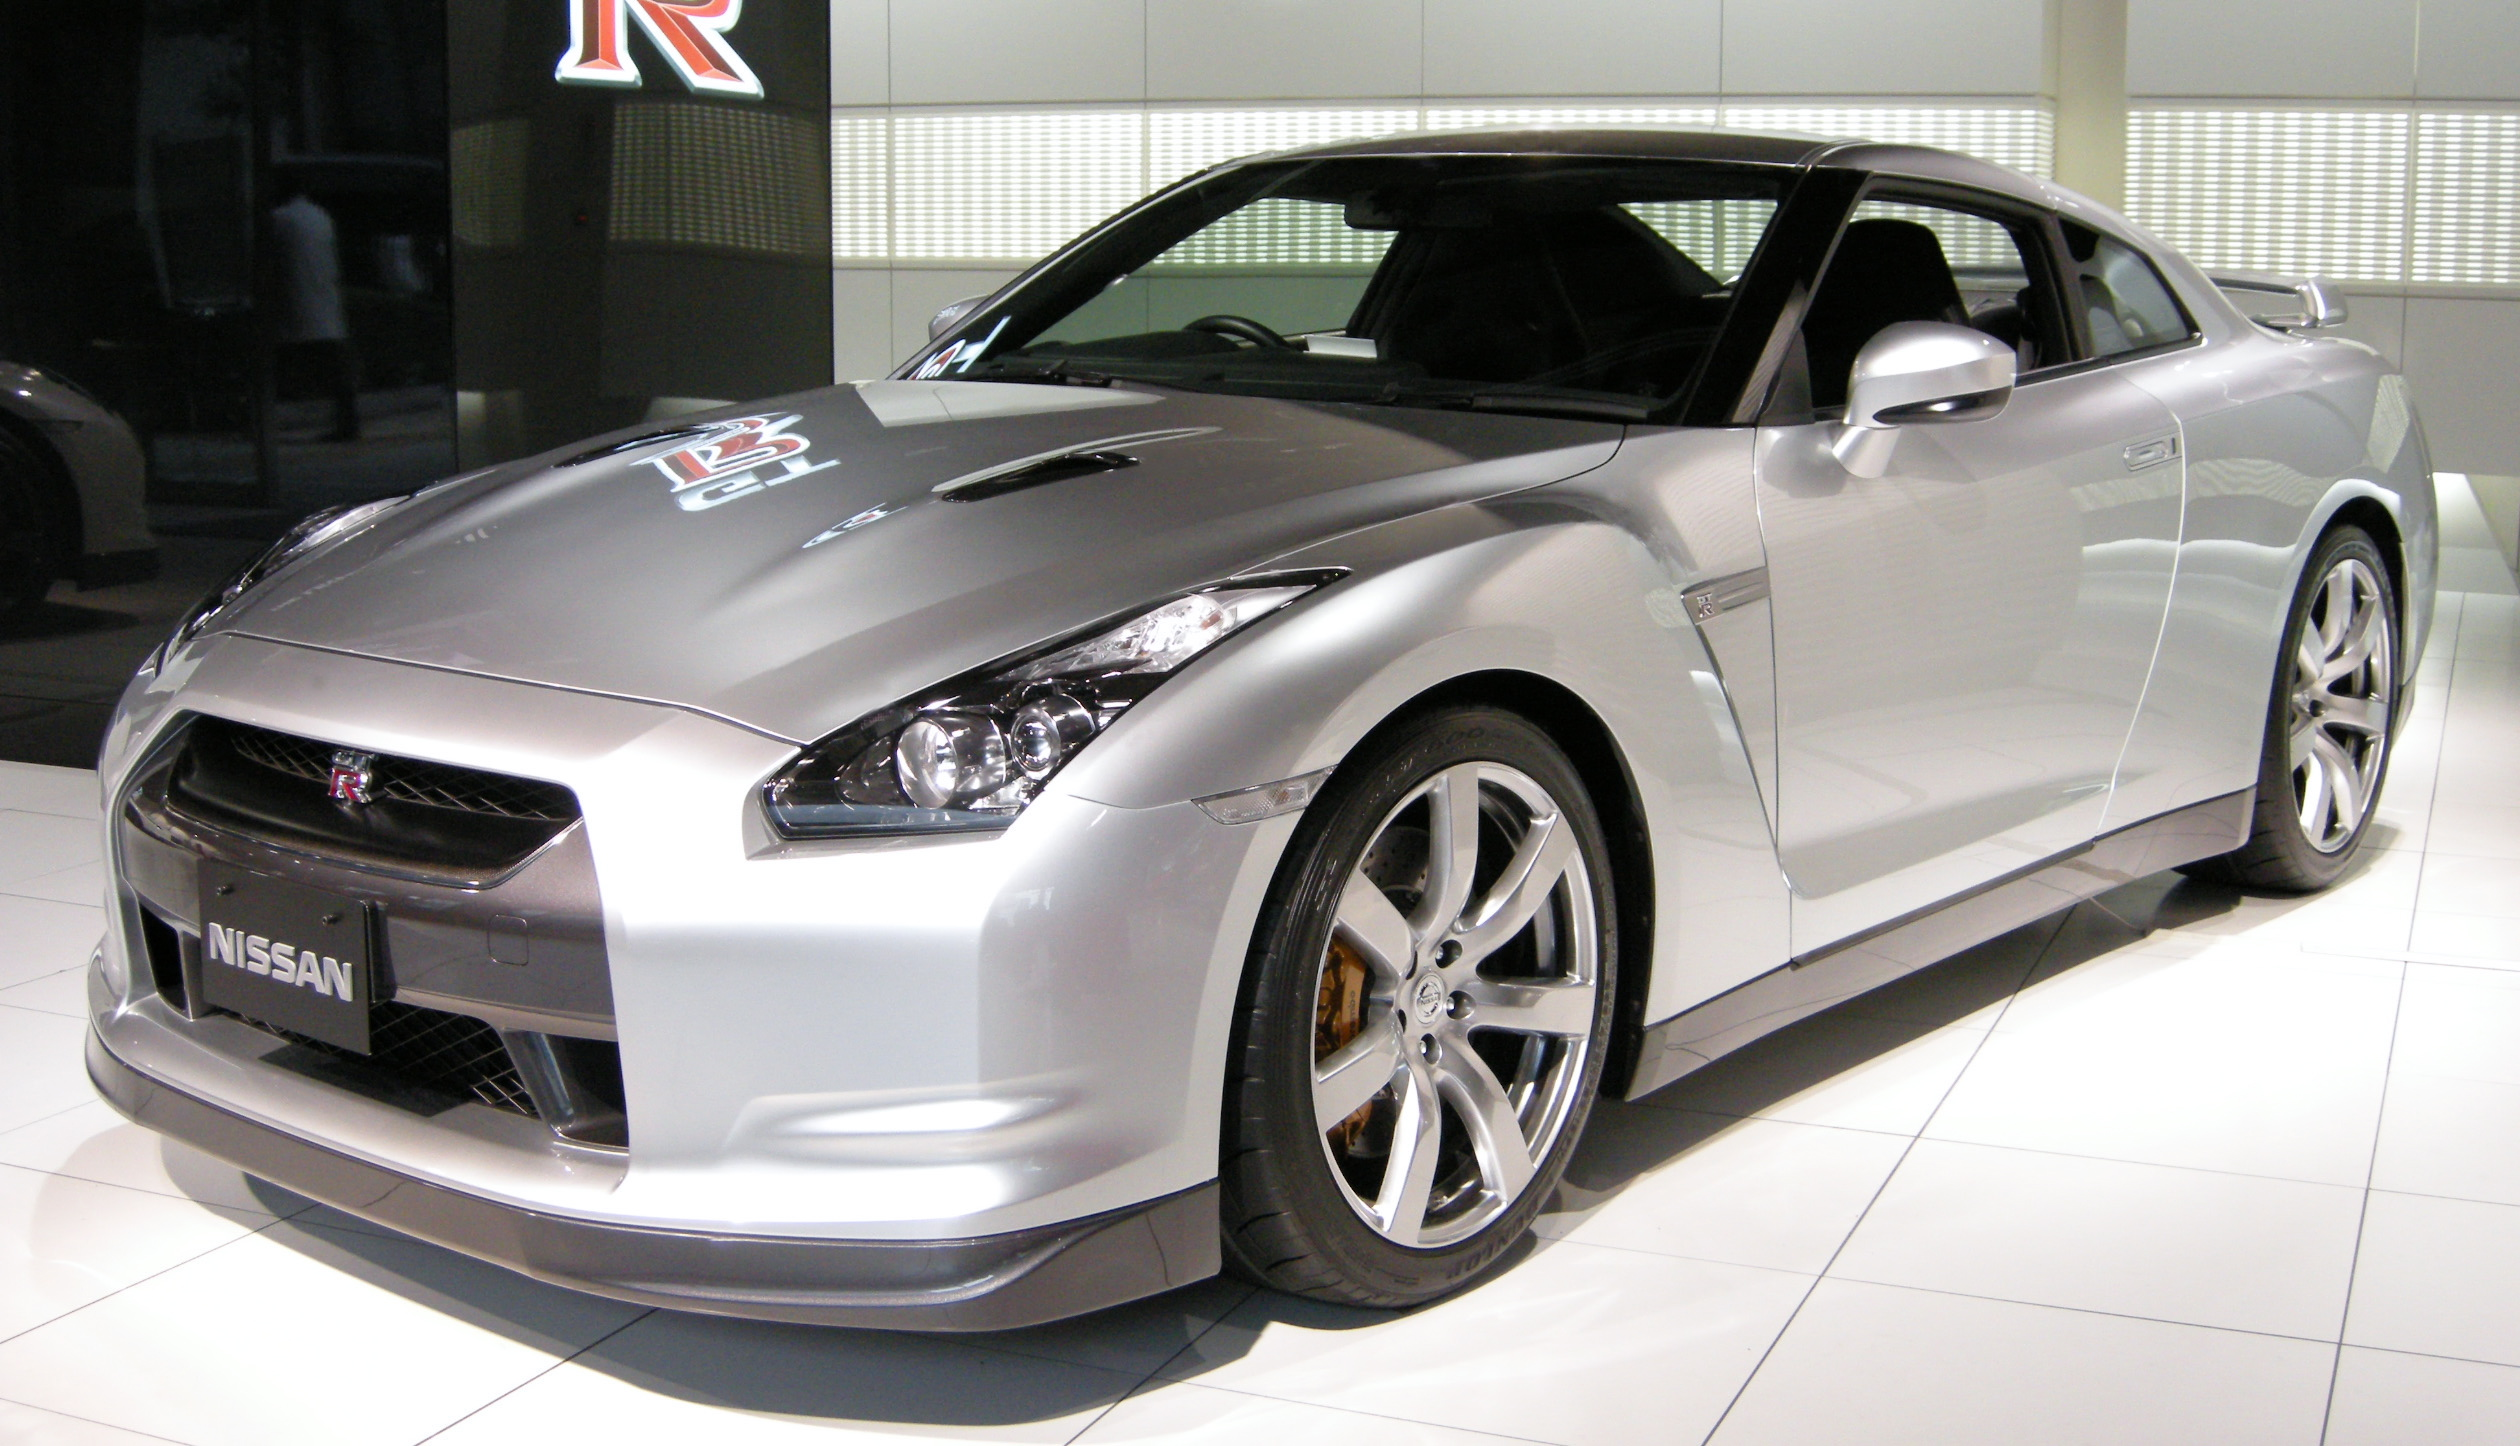 file nissan gt r 01 jpg wikipedia. Black Bedroom Furniture Sets. Home Design Ideas